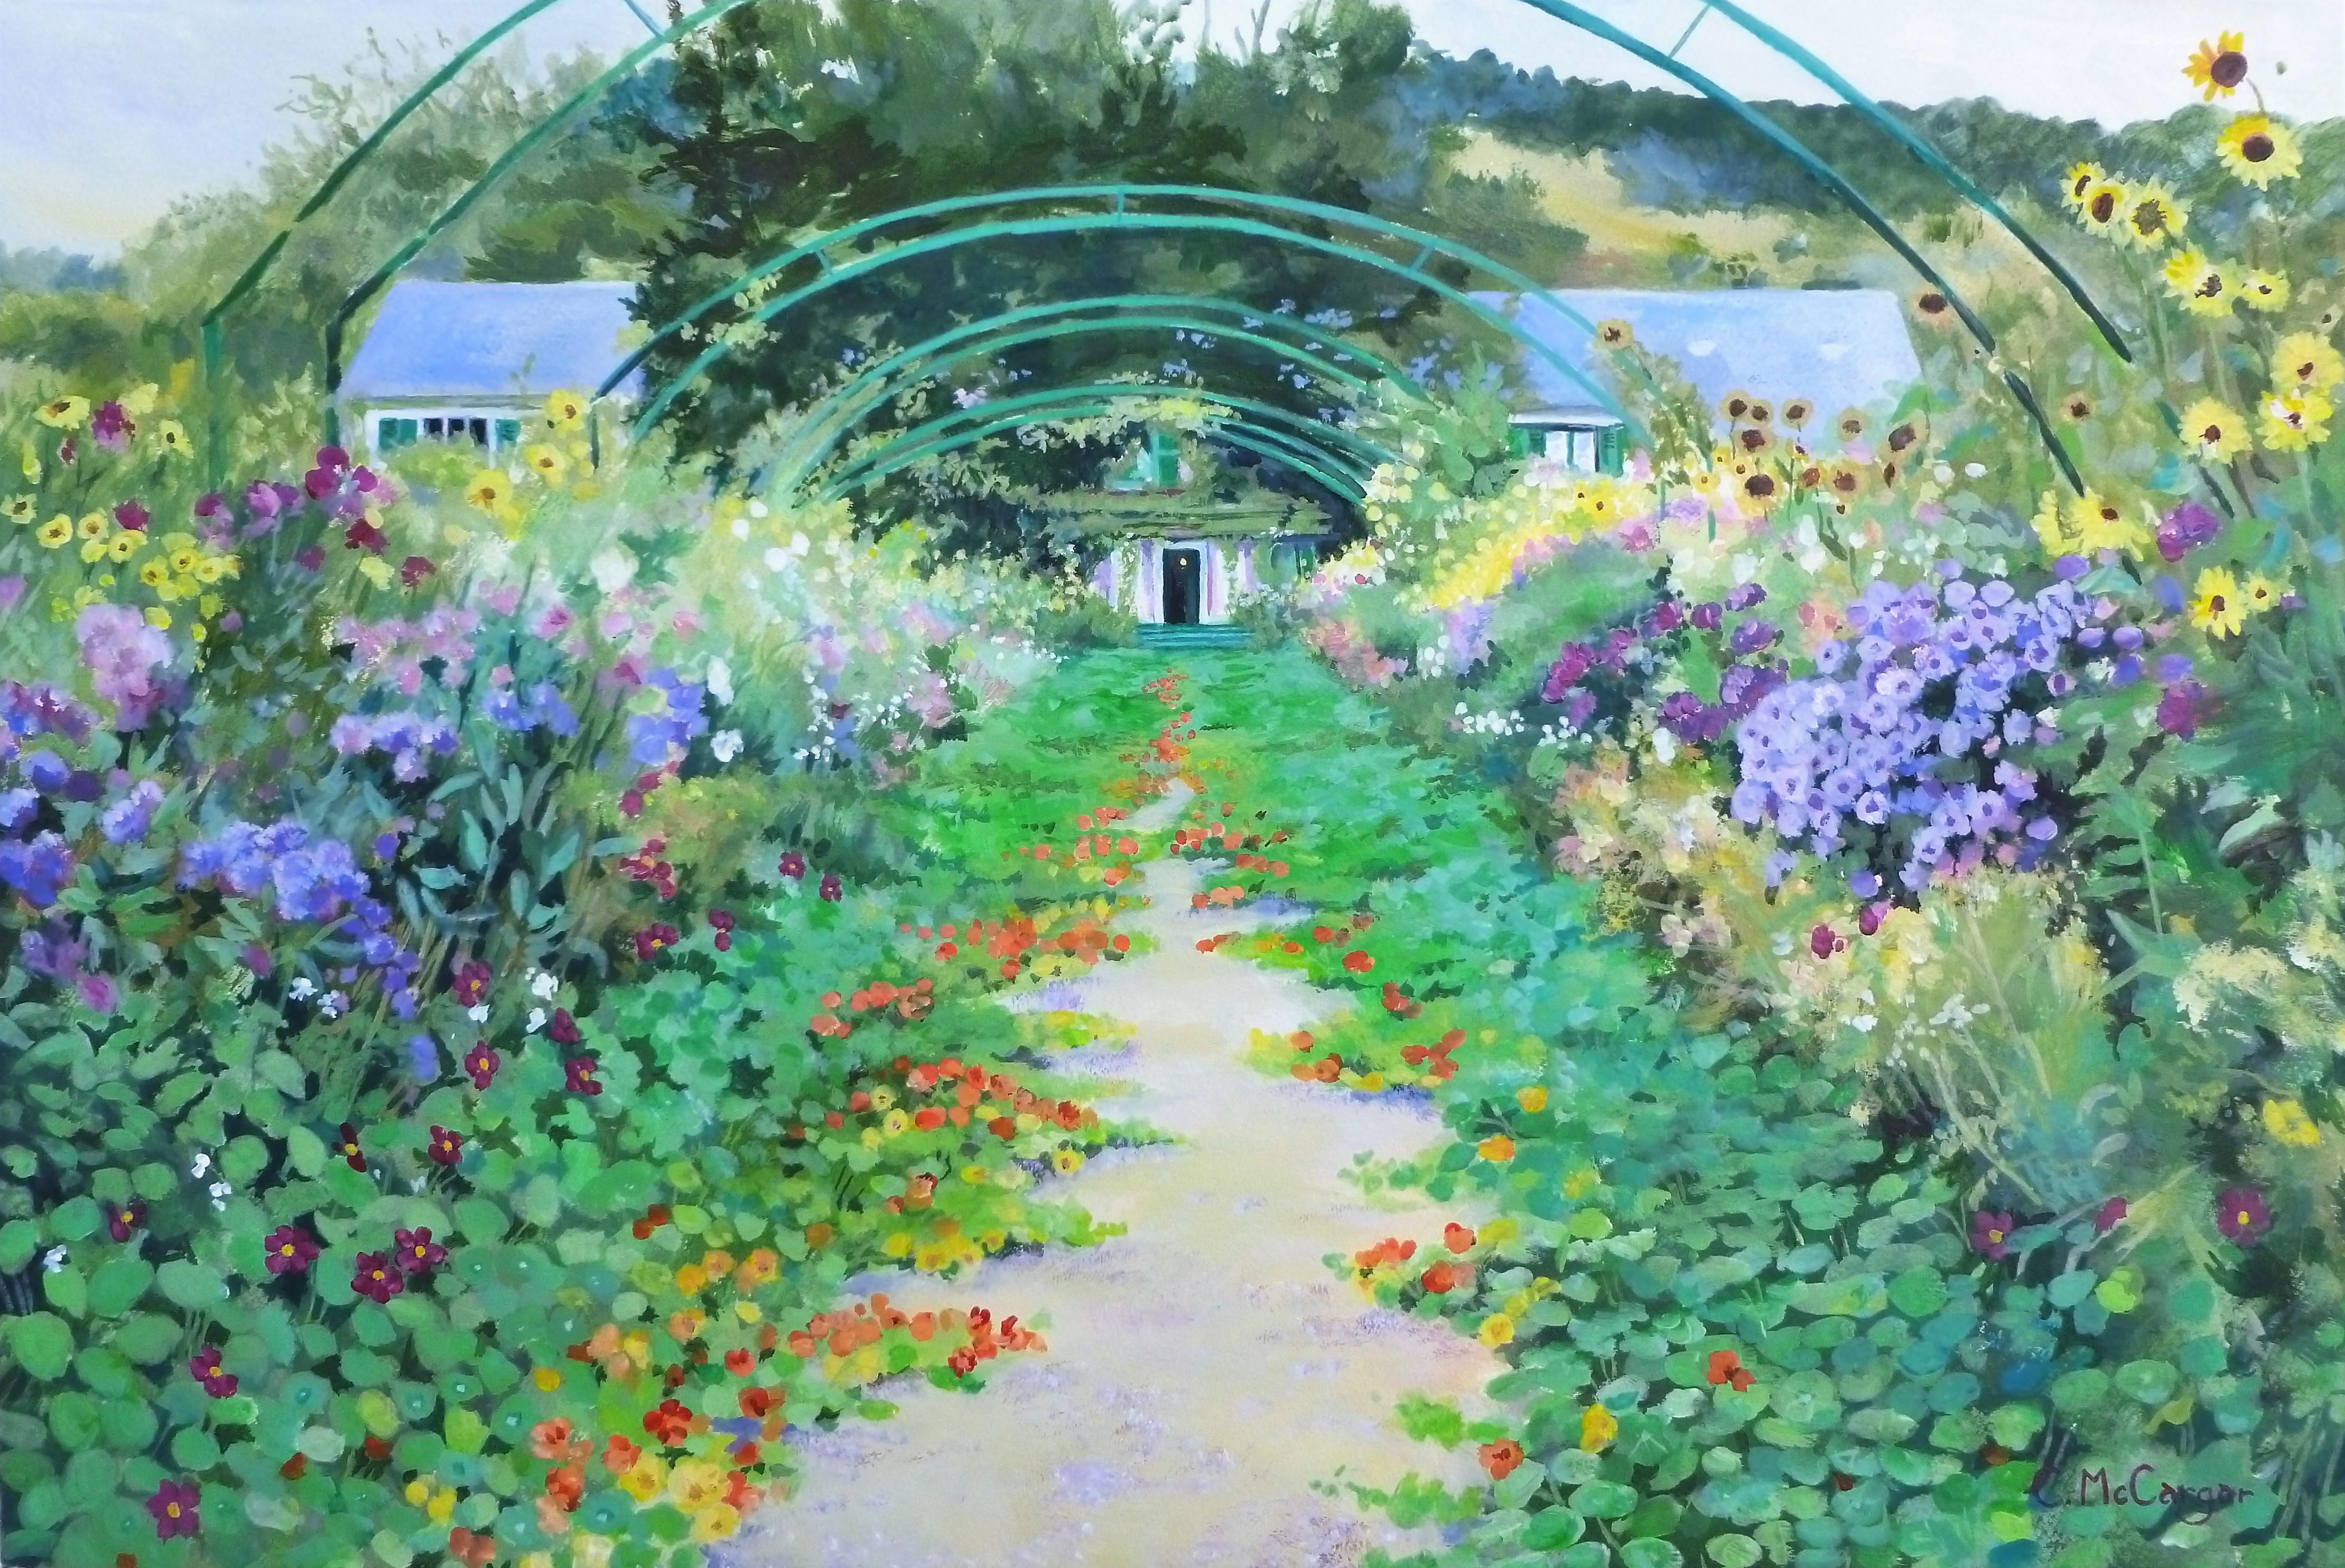 Arched Pathway in Monet's Garden, Giverny, Original Painting